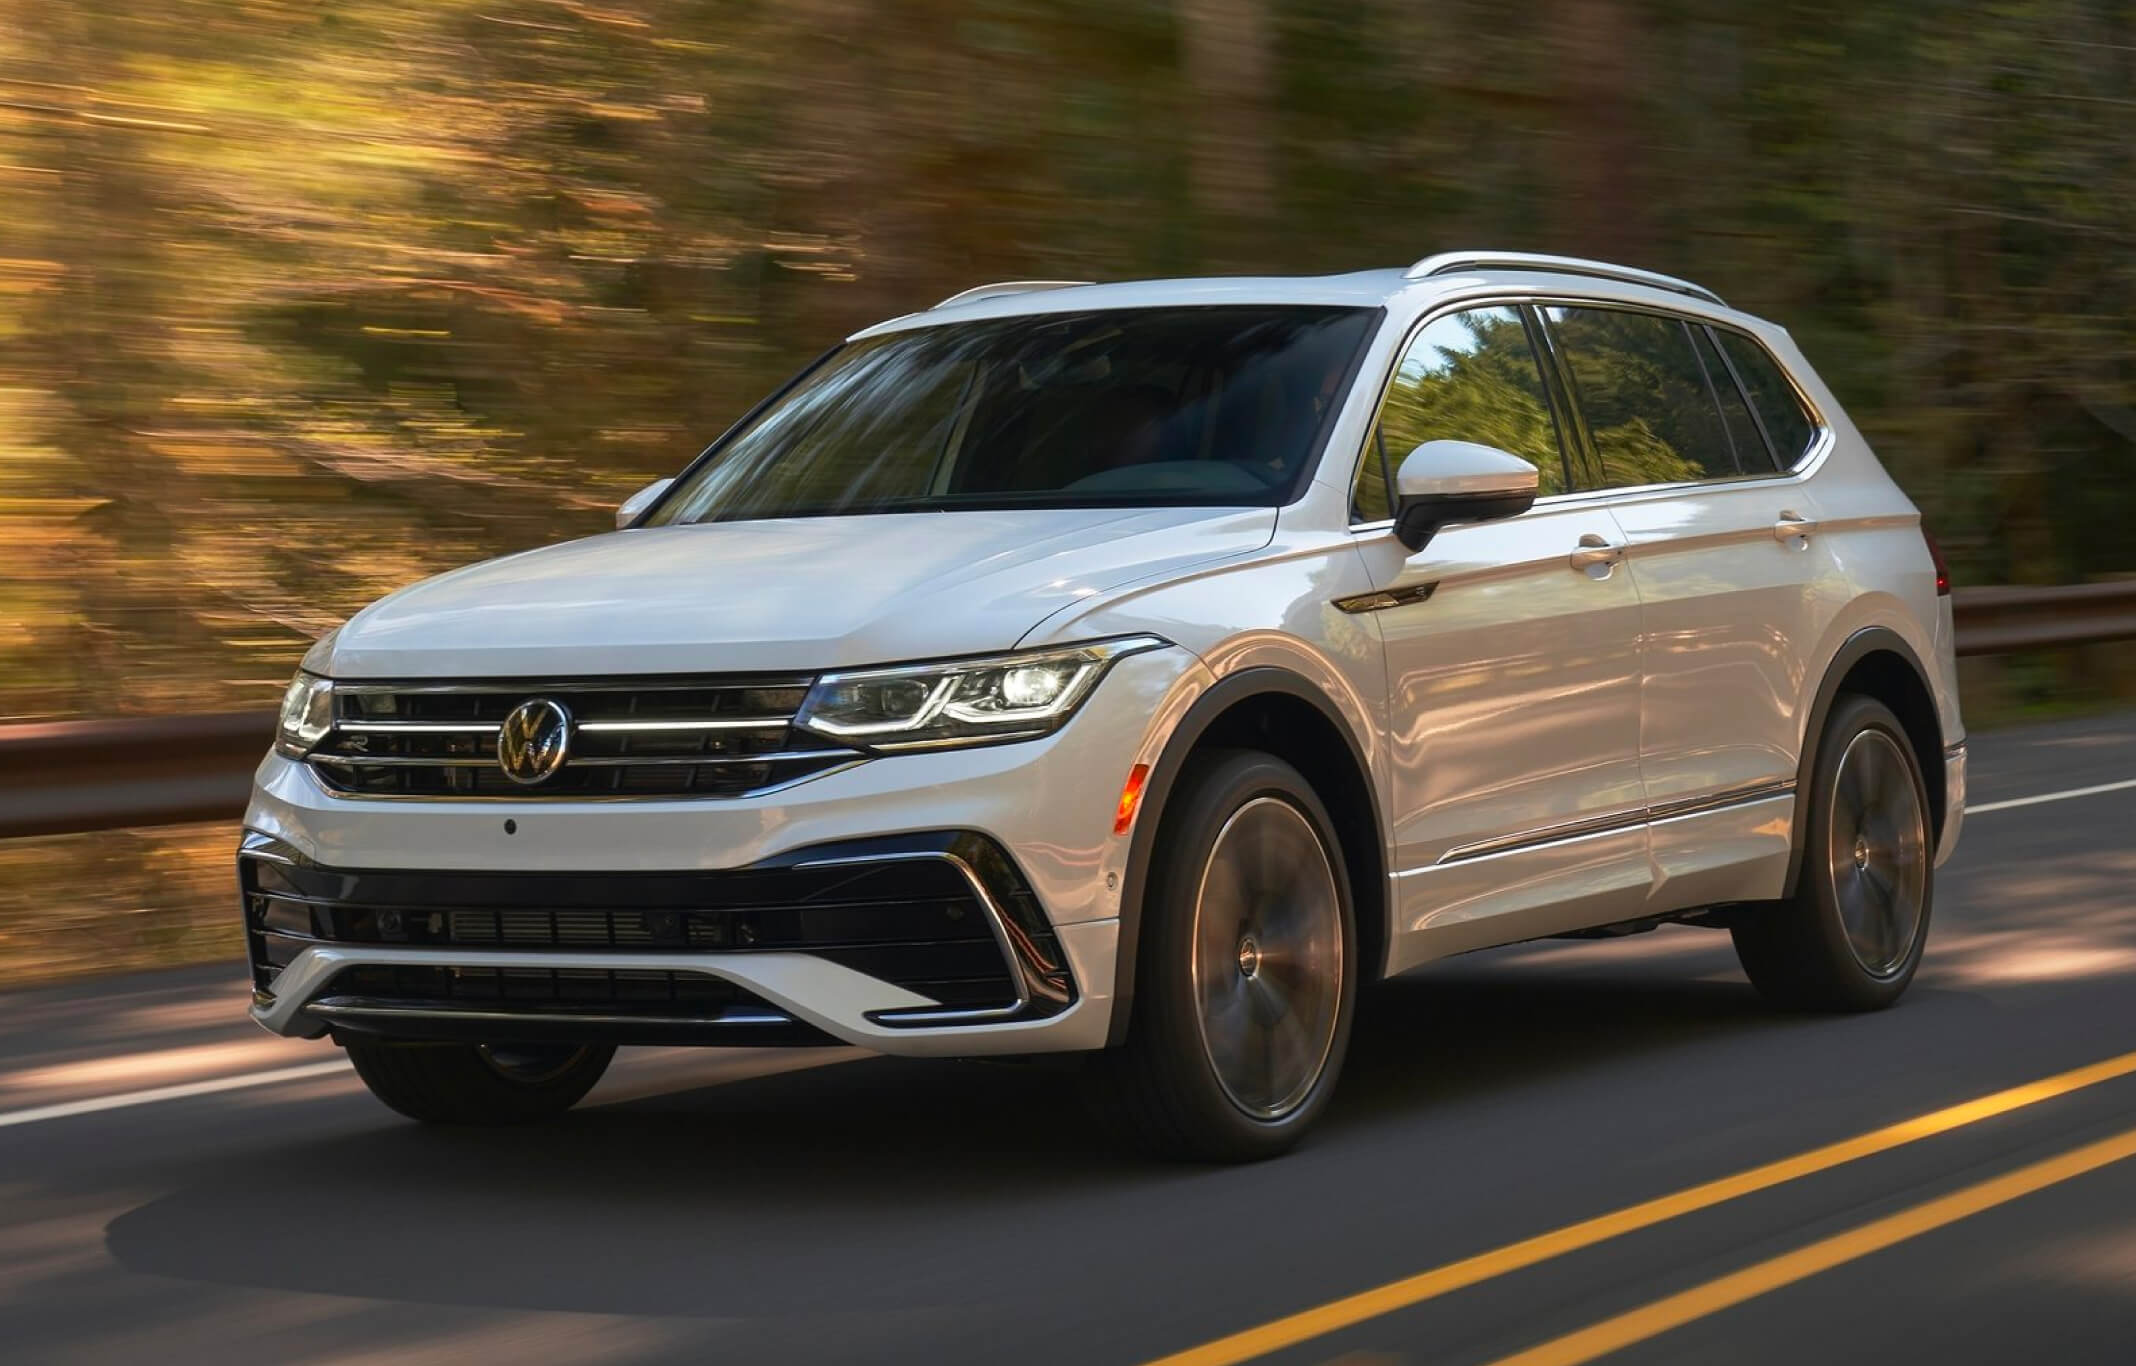 Get to Know the All-New 2022 Volkswagen Tiguan